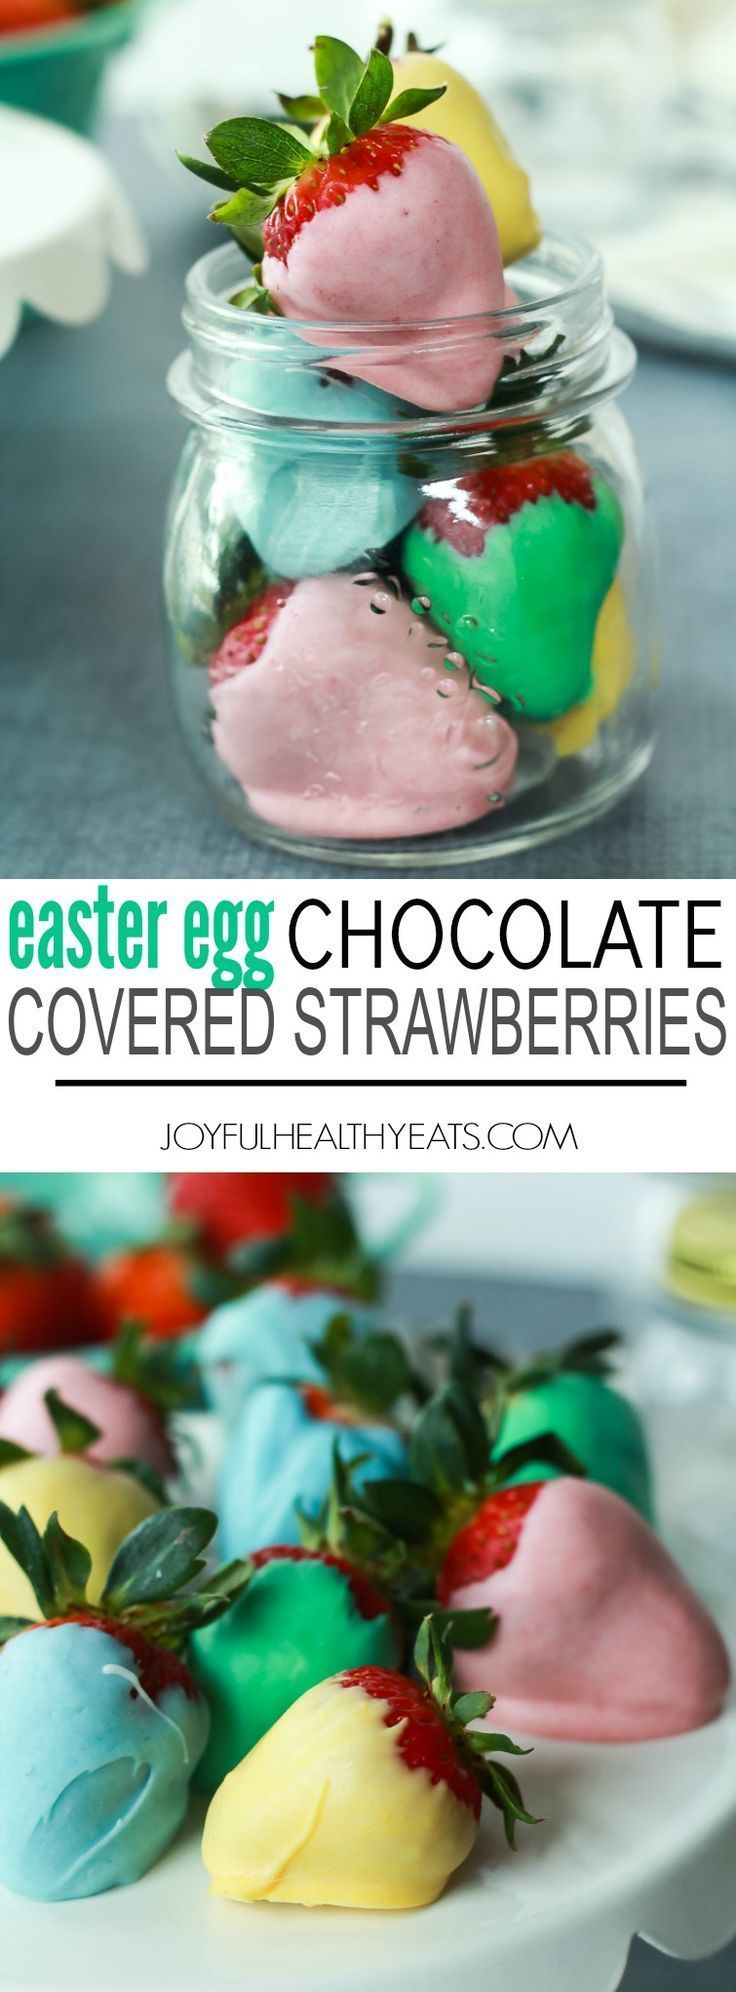 Easter Egg Chocolate Covered Strawberries Recipe using three ingredients - a fun festive dessert to make with your kids for Easter!   http://joyfulhealthyeats.com #eastereggcrafts